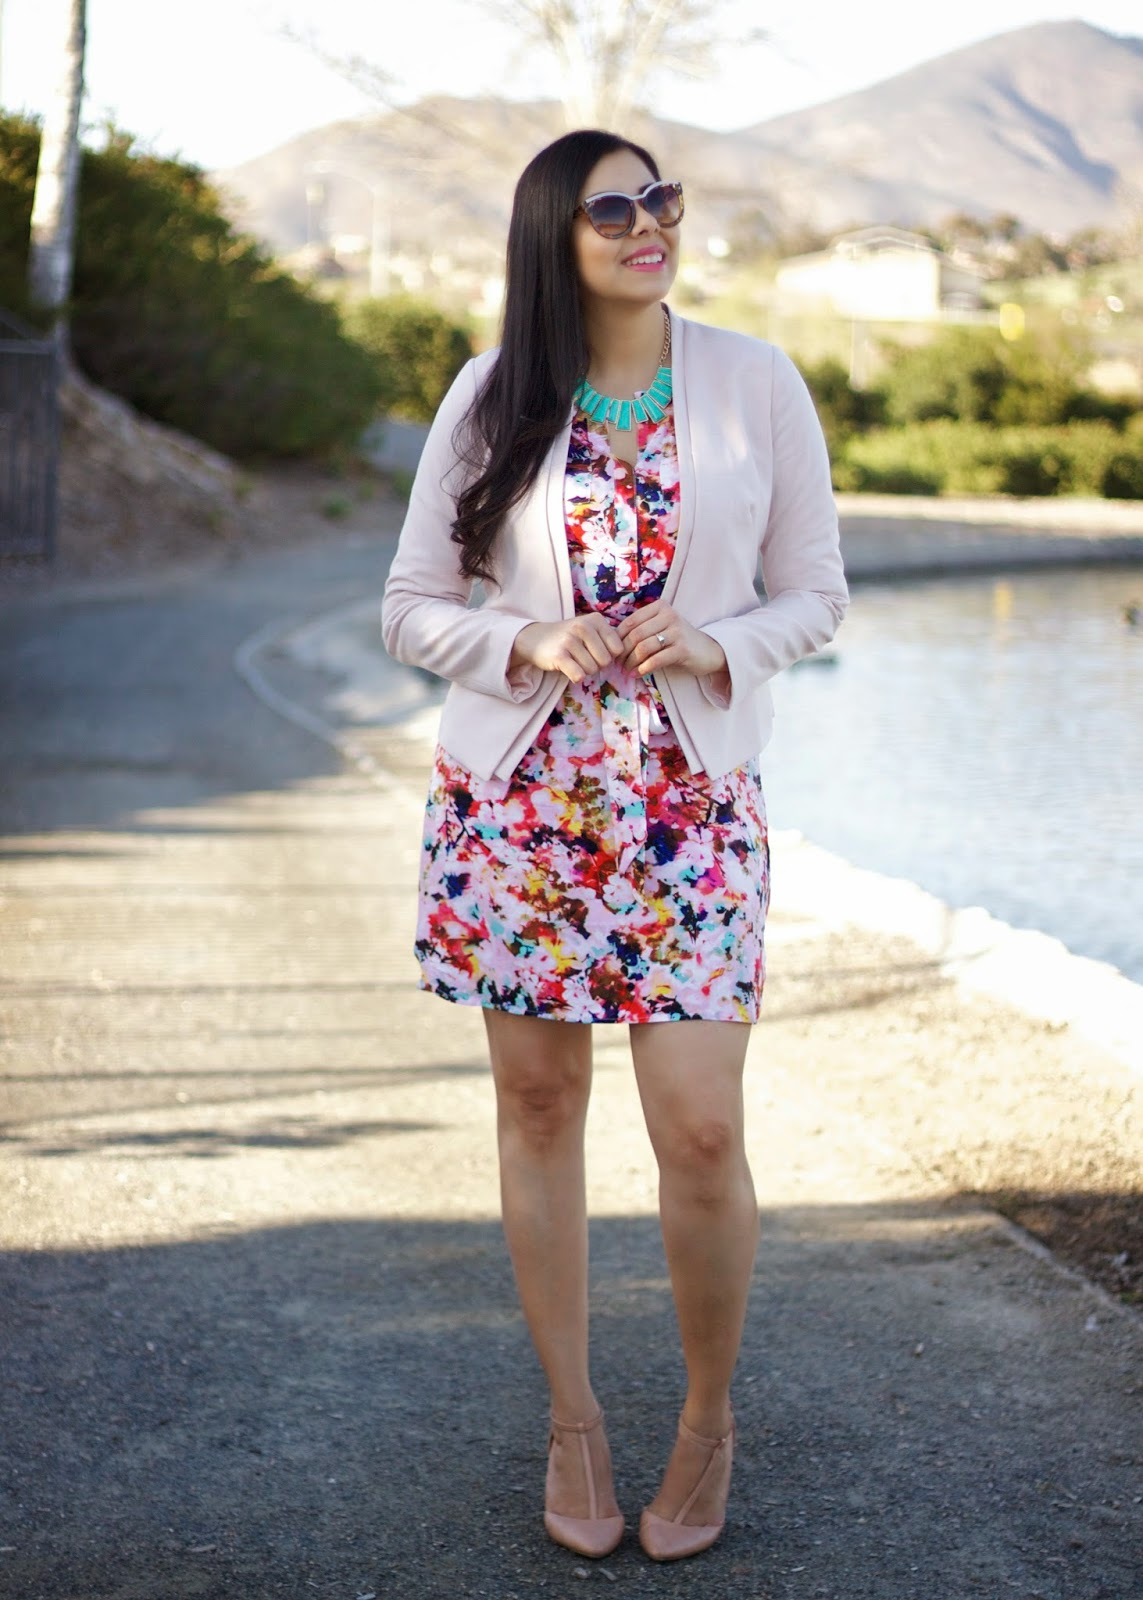 JCPenney dress, Pastels and Florals, Floral Dresses, San Diego Fashion Blogger, San Diego style blogger, blogger in san diego